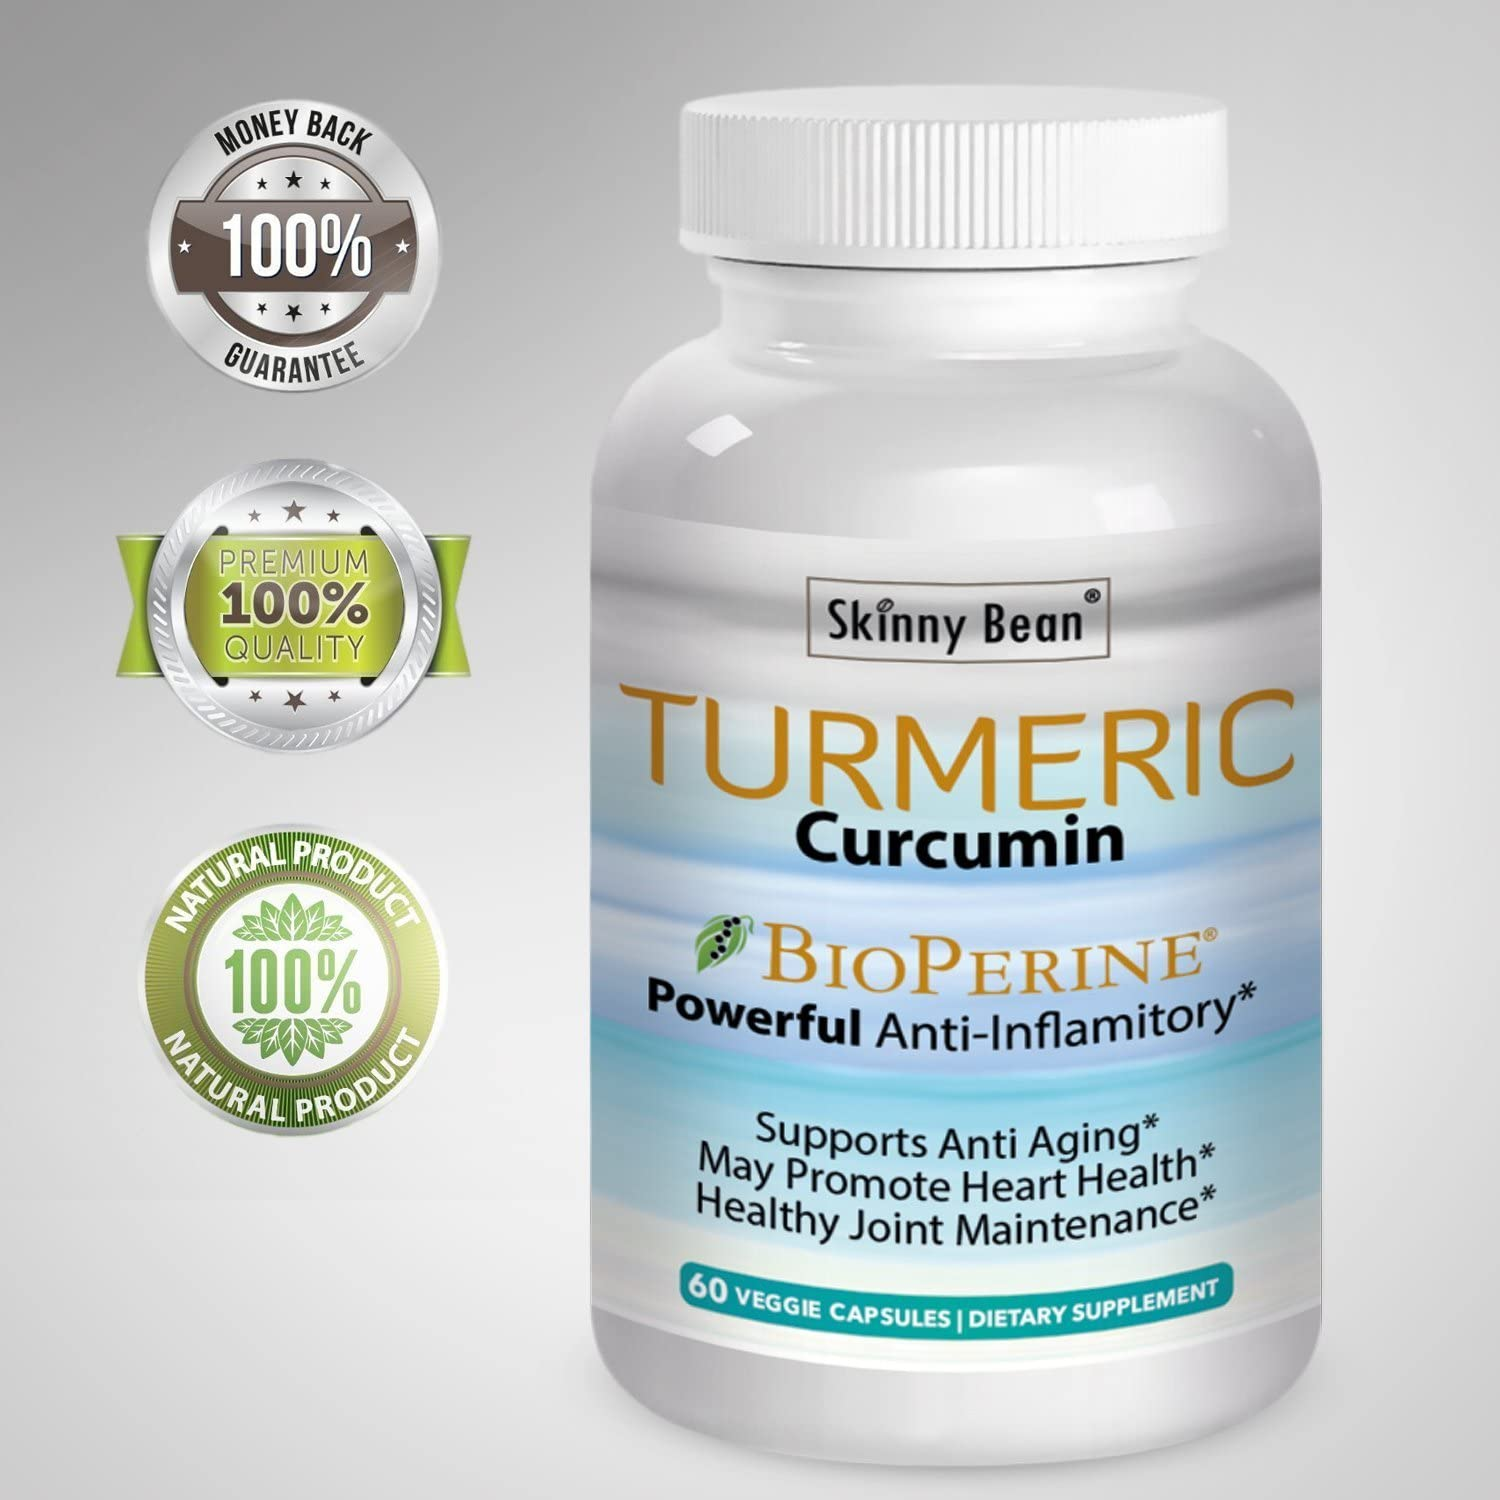 Skinny Bean Turmeric Curcumin BioPerene Pain Relief Anti Inflammatory pure ground formula capsules pills with black pepper